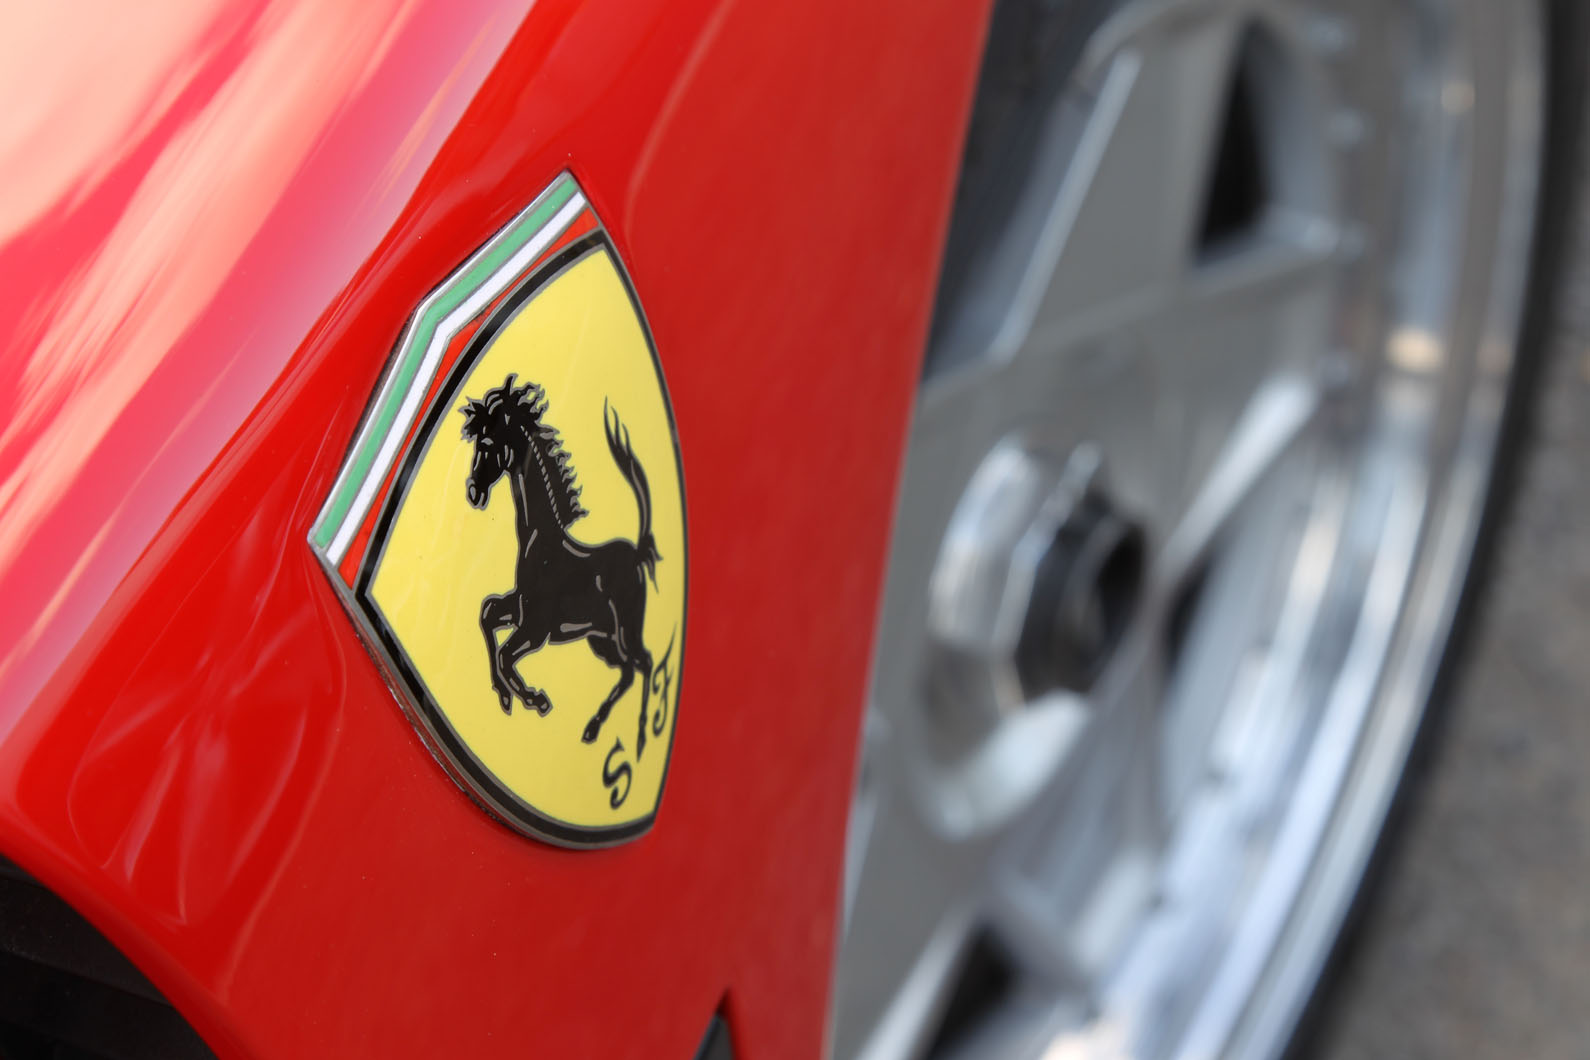 The 17 Inch Alloy Wheels Were Perfectly Sized When The F40